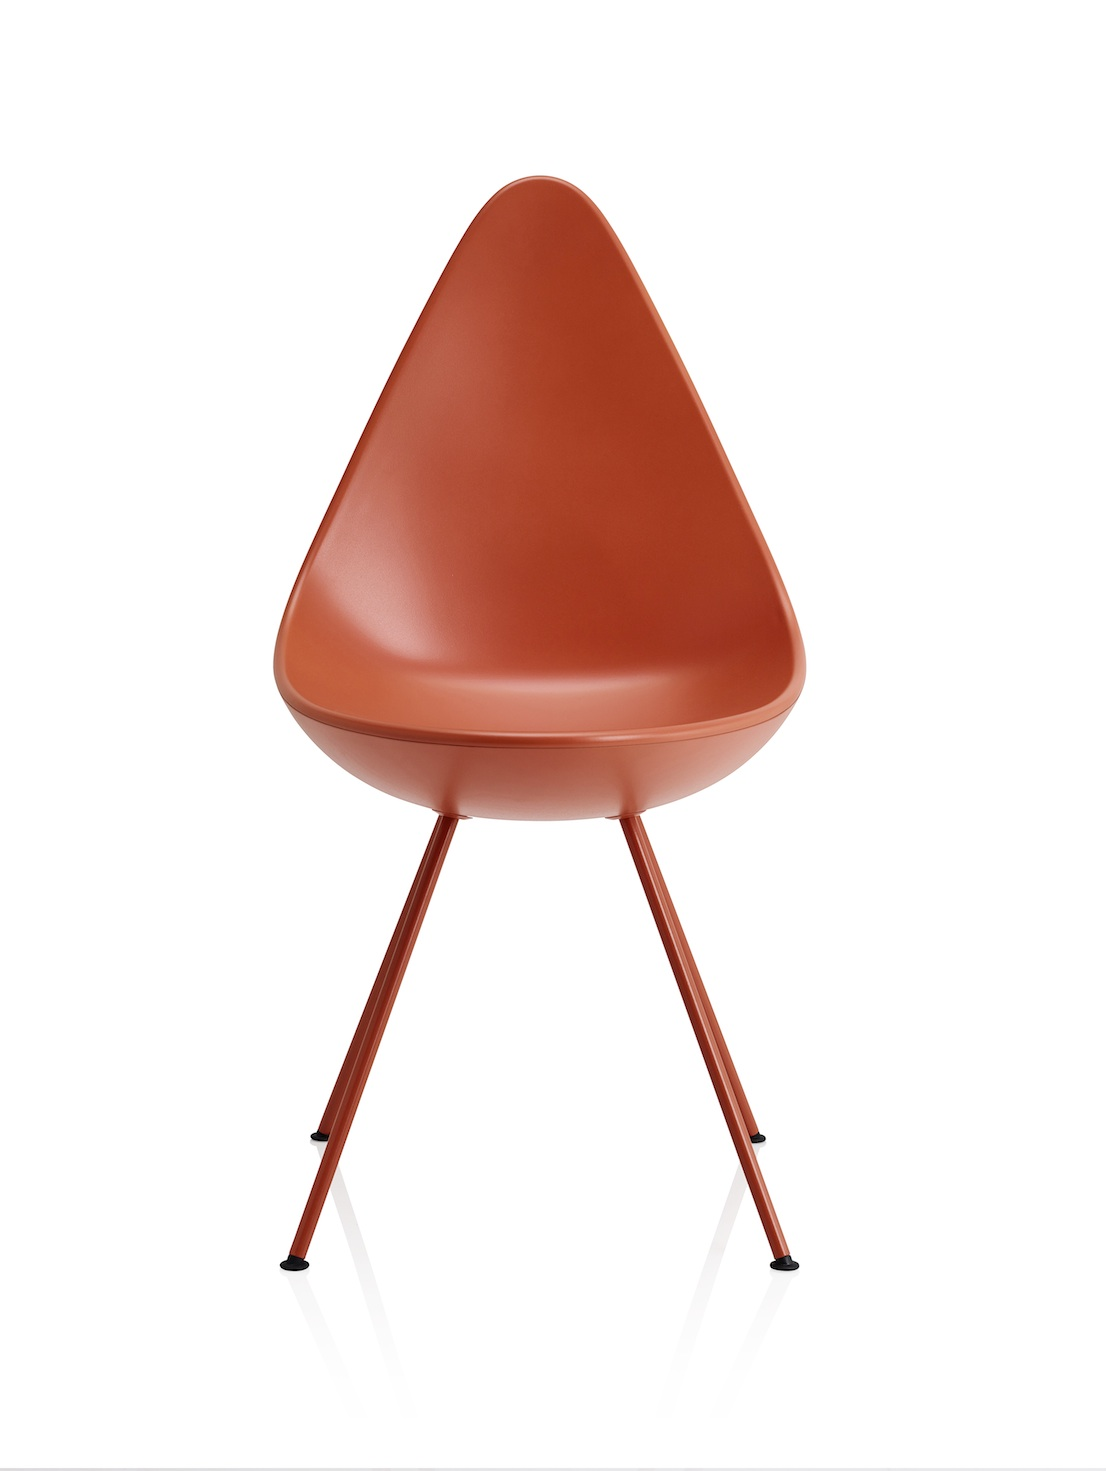 Drop chair fritz hansen arne jacobsen klat for Arne jacobsen stuhl nachbau